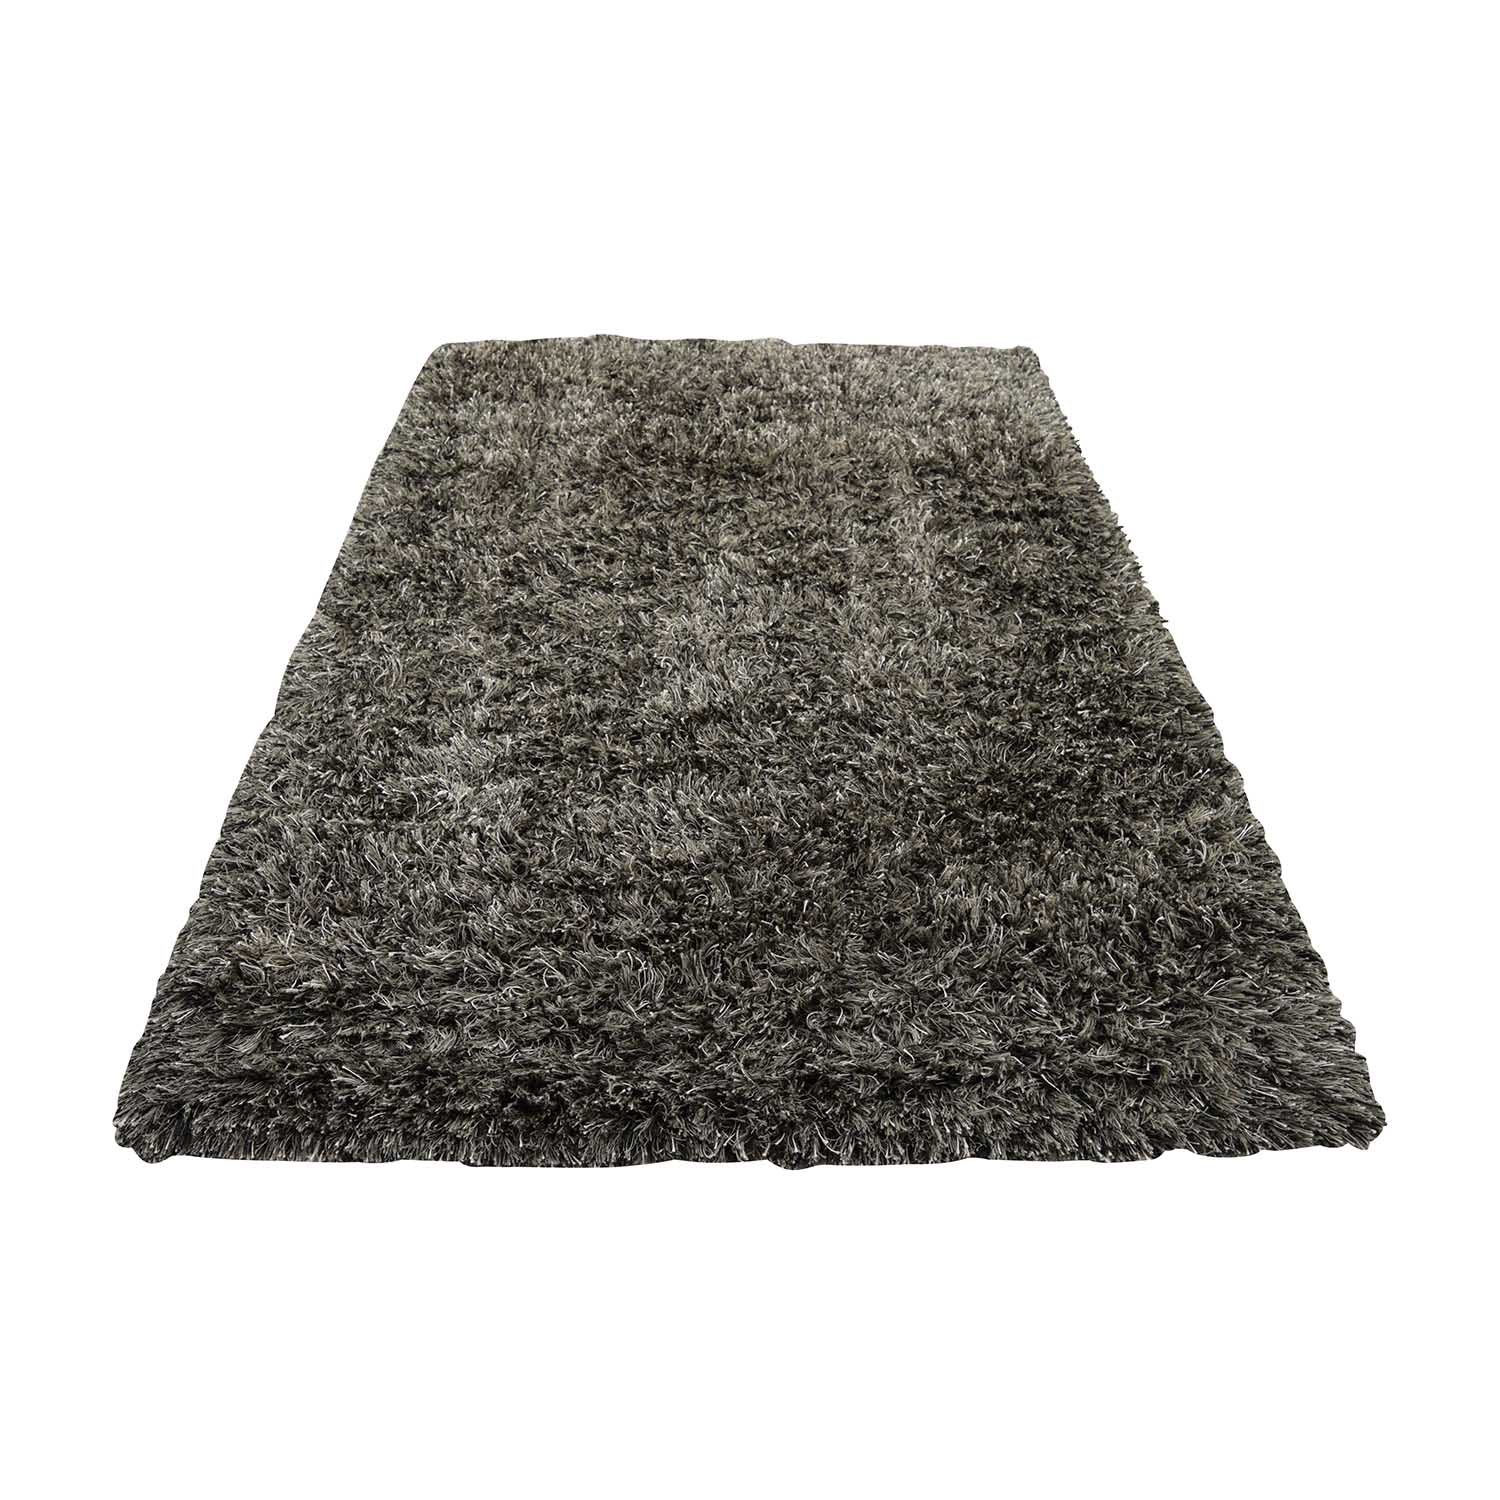 CB2 CB2 Drake Grey Shag Rug On Sale